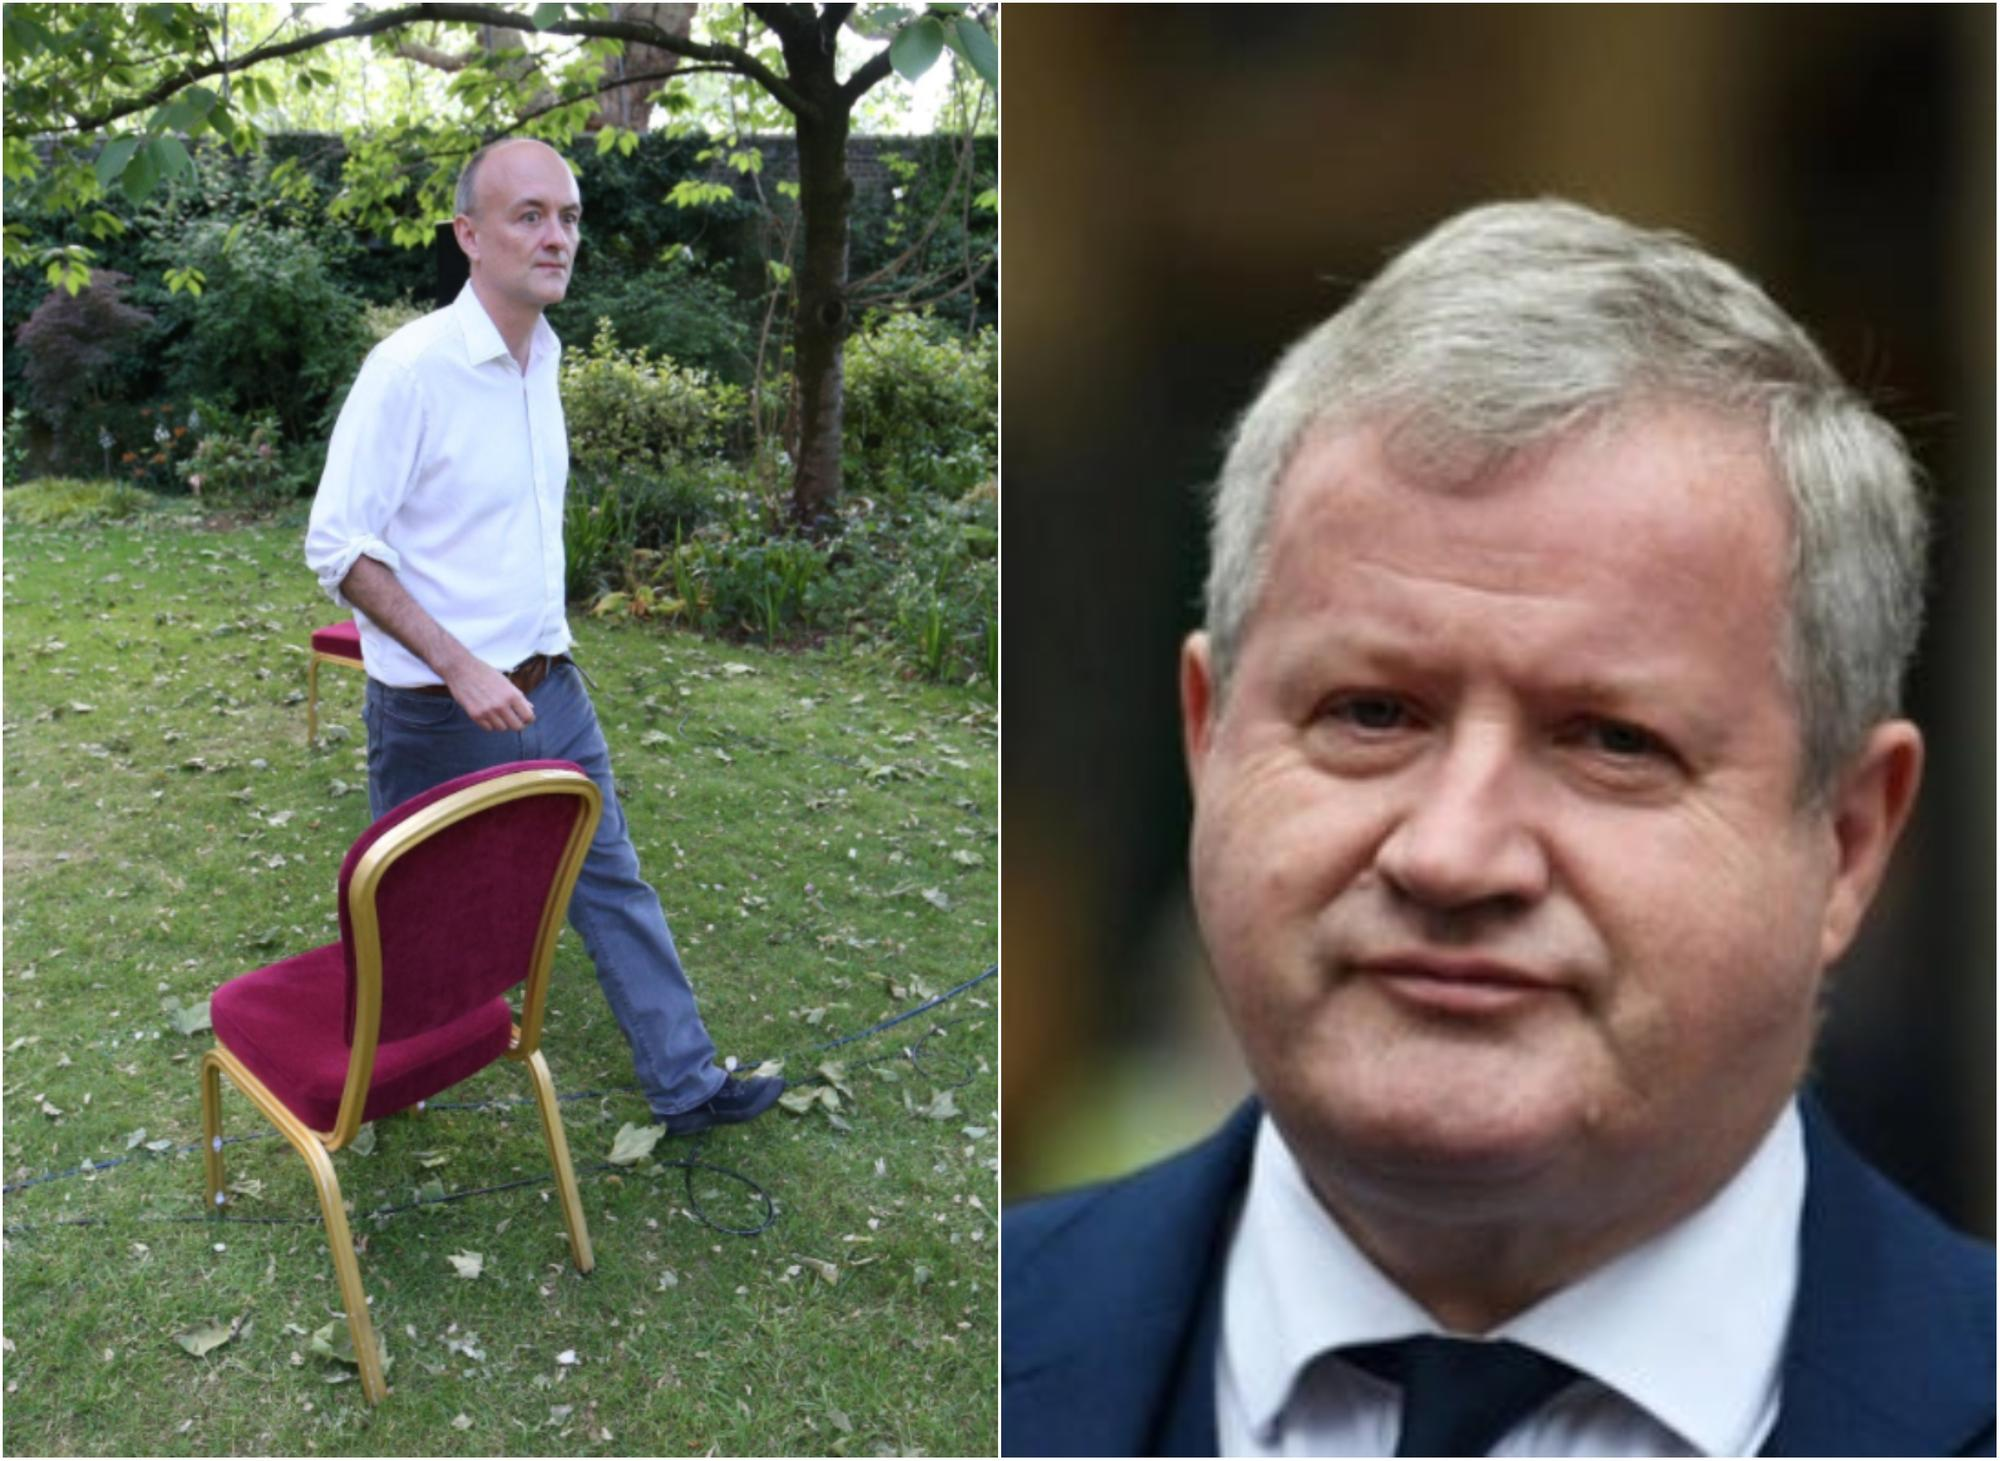 SNP Westminster leader Ian Blackford responds to Dominic Cummings' explanation for lockdown trip